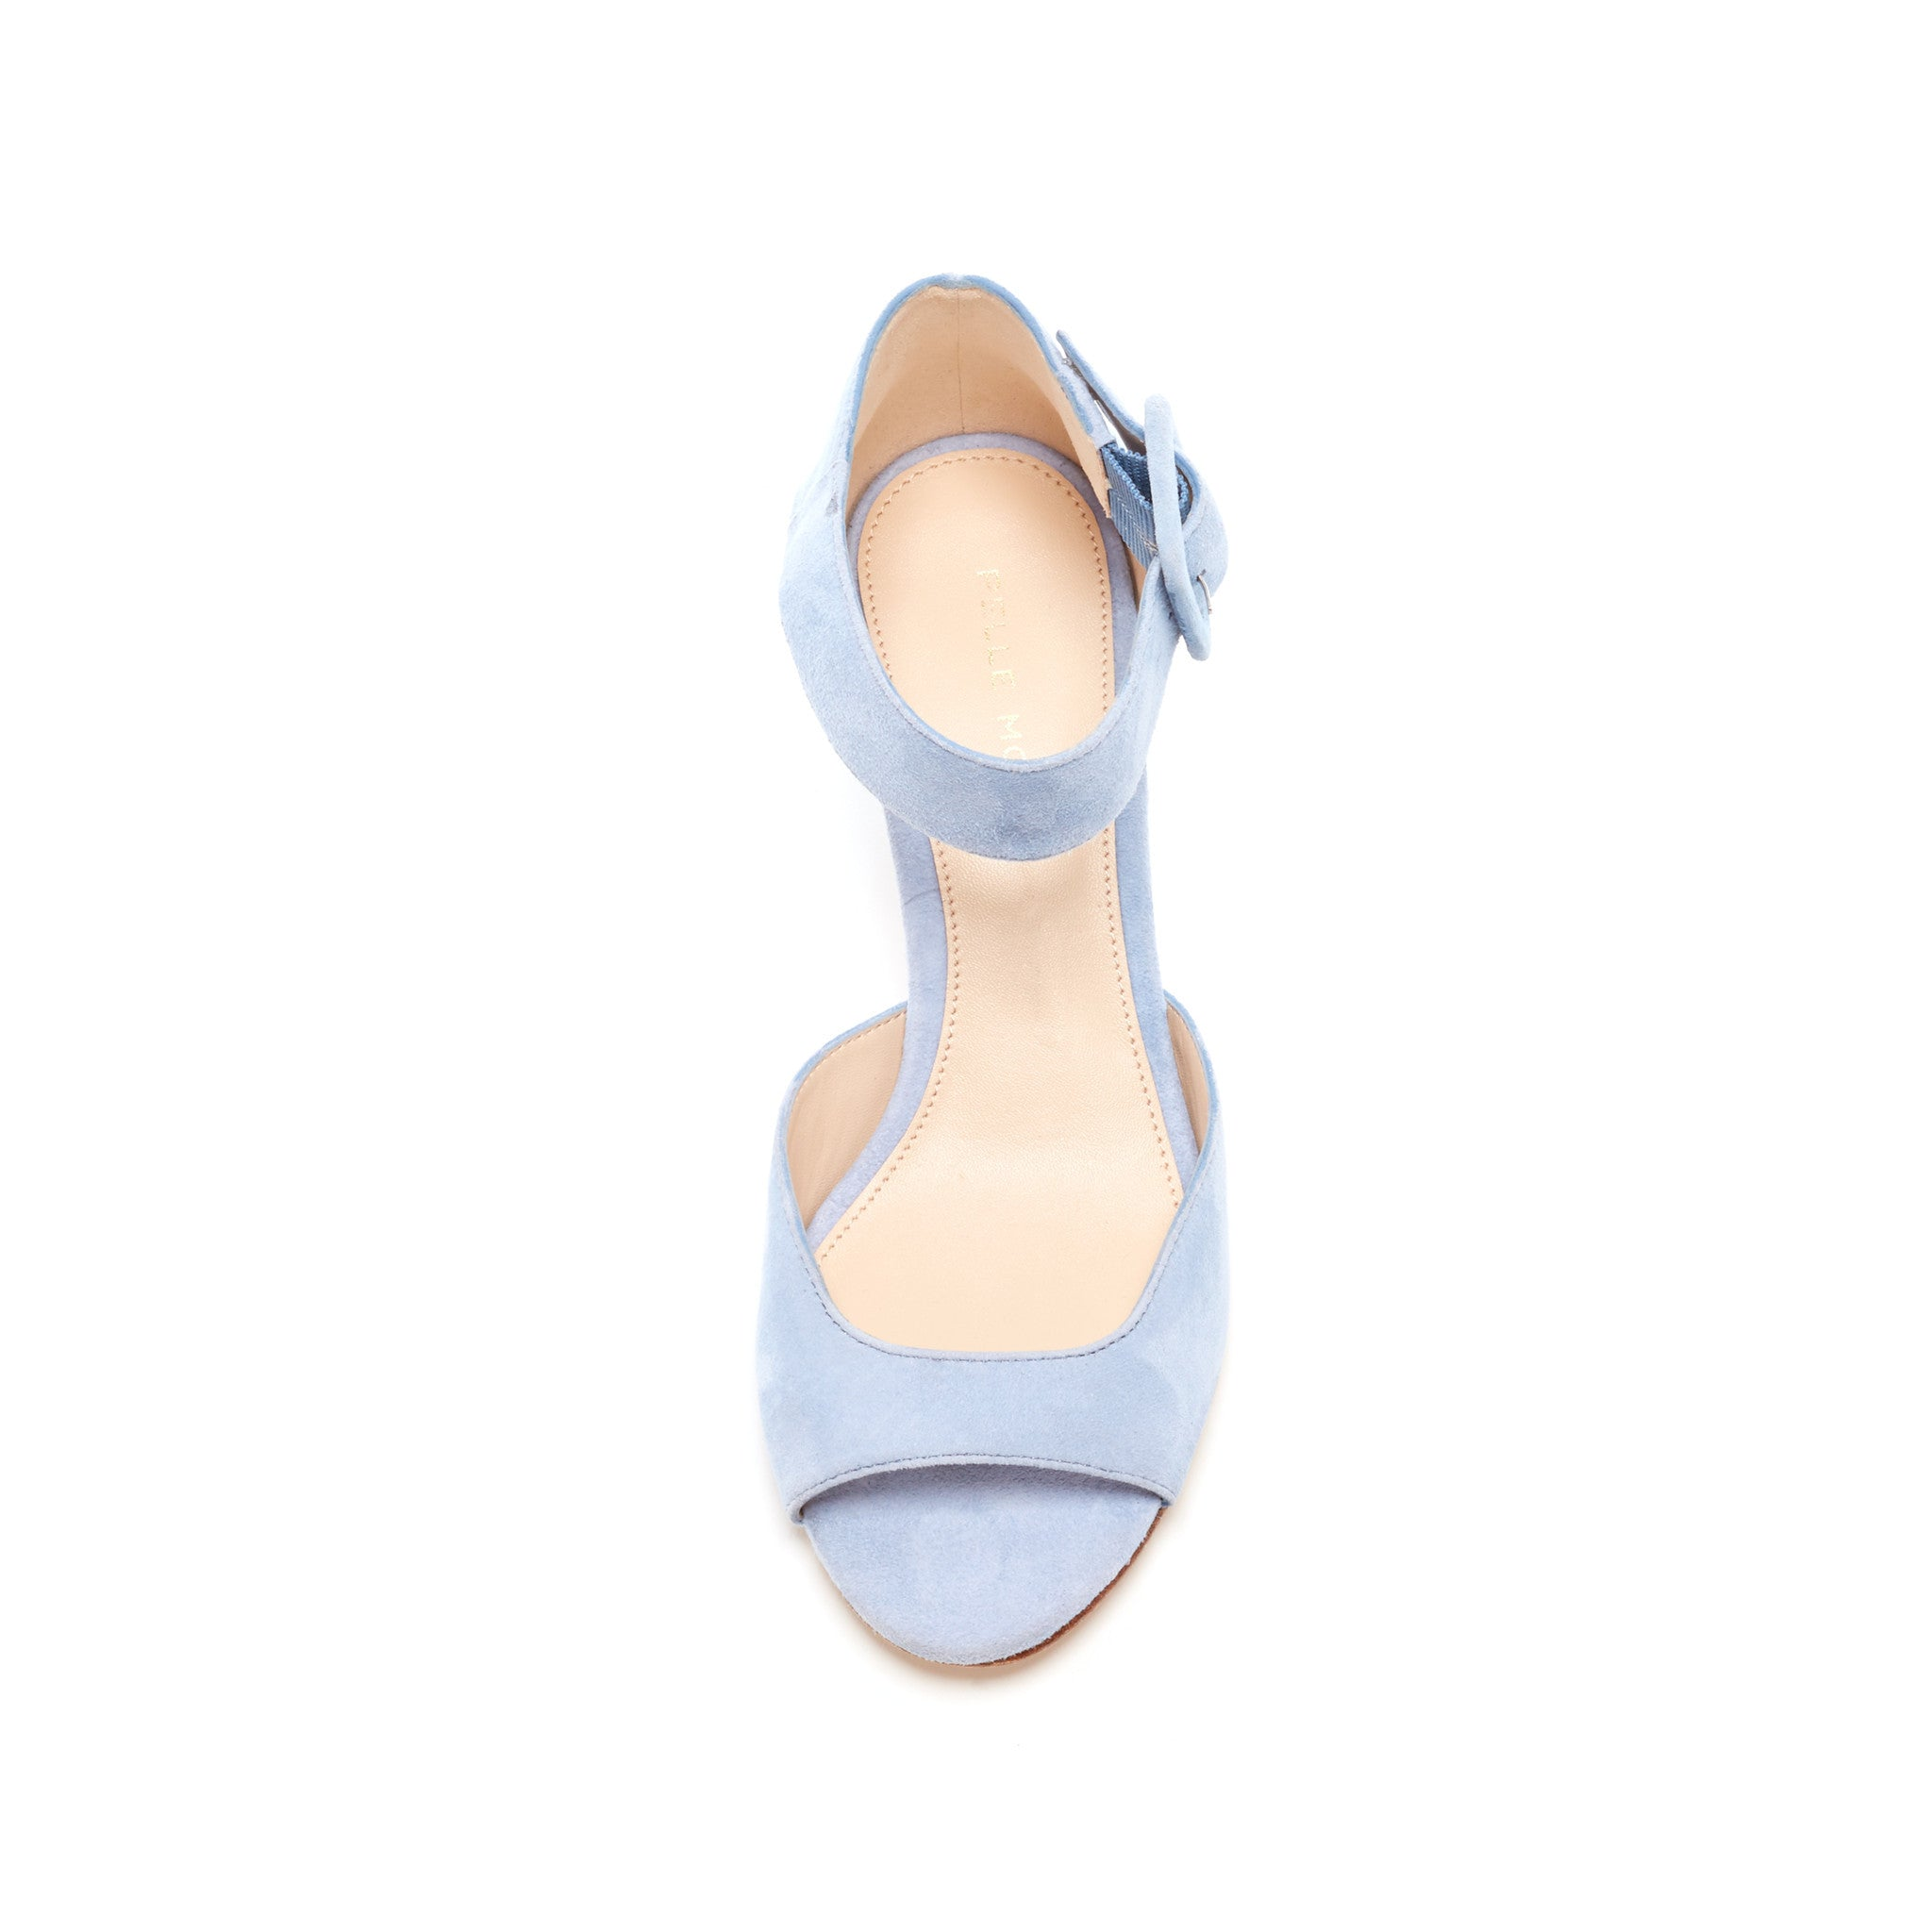 Berlin (Powder Blue / Kid Suede) - Pellemoda.us  - 3